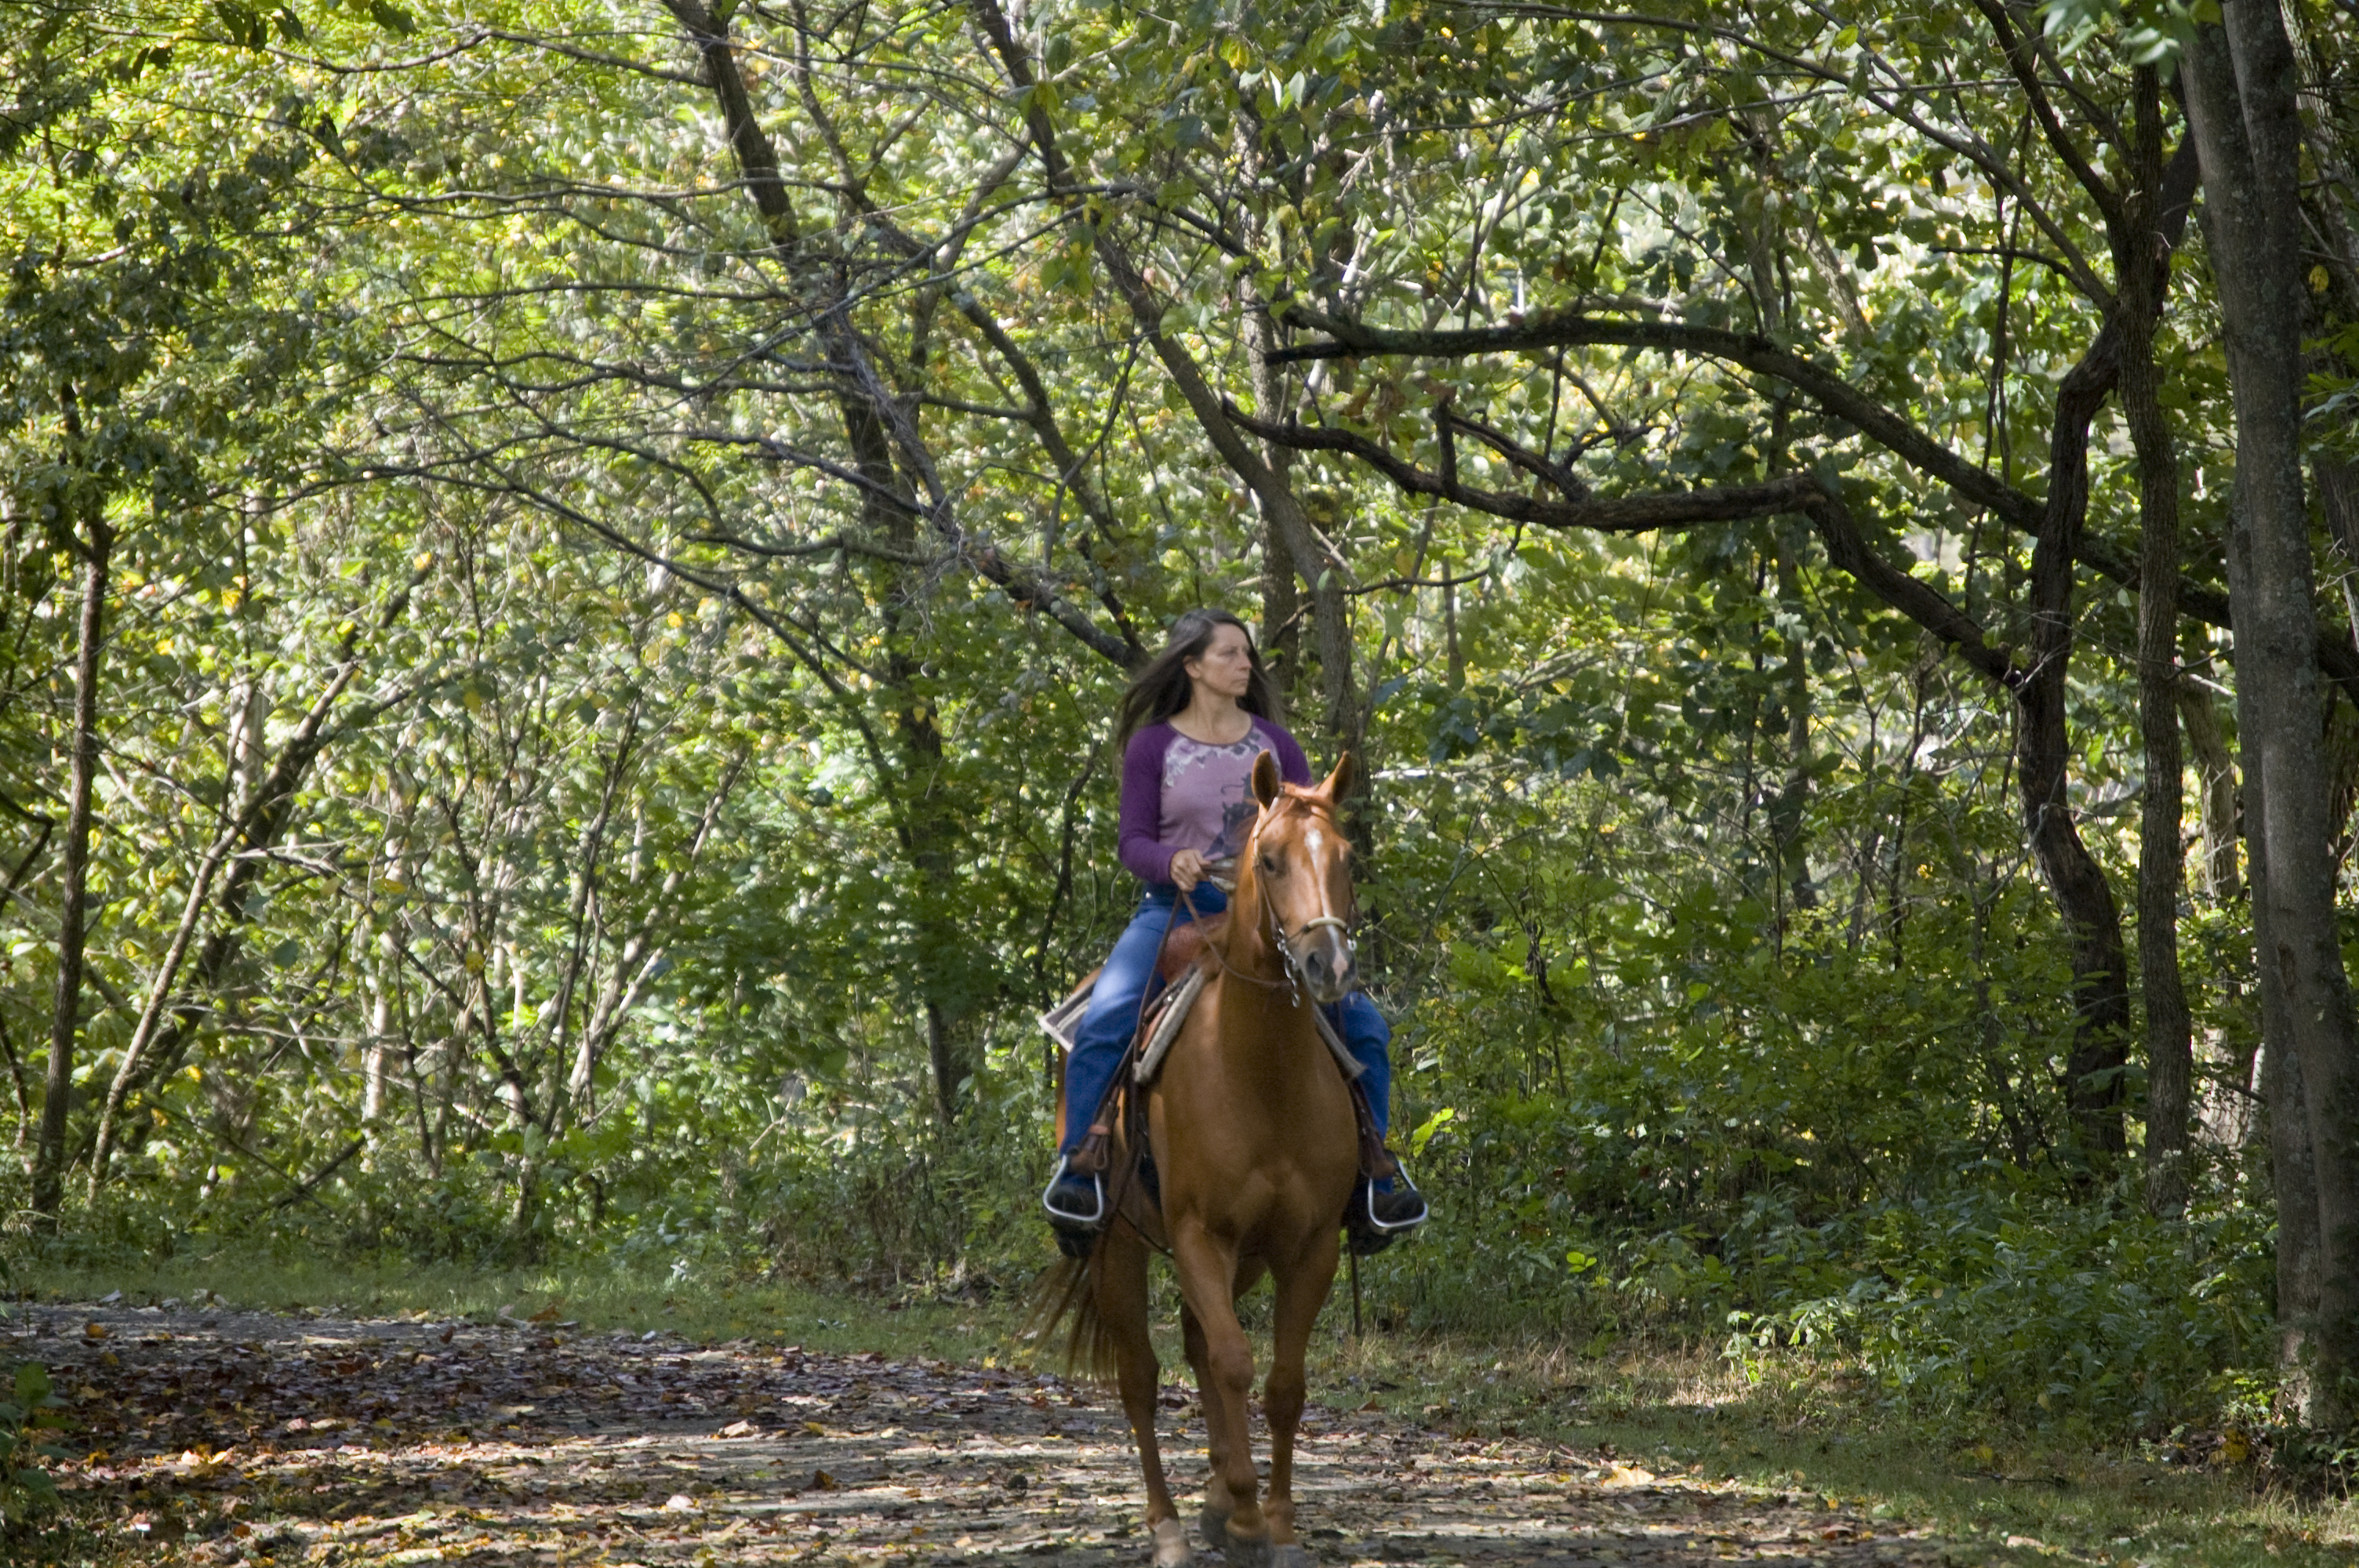 Students trail riding with their horses